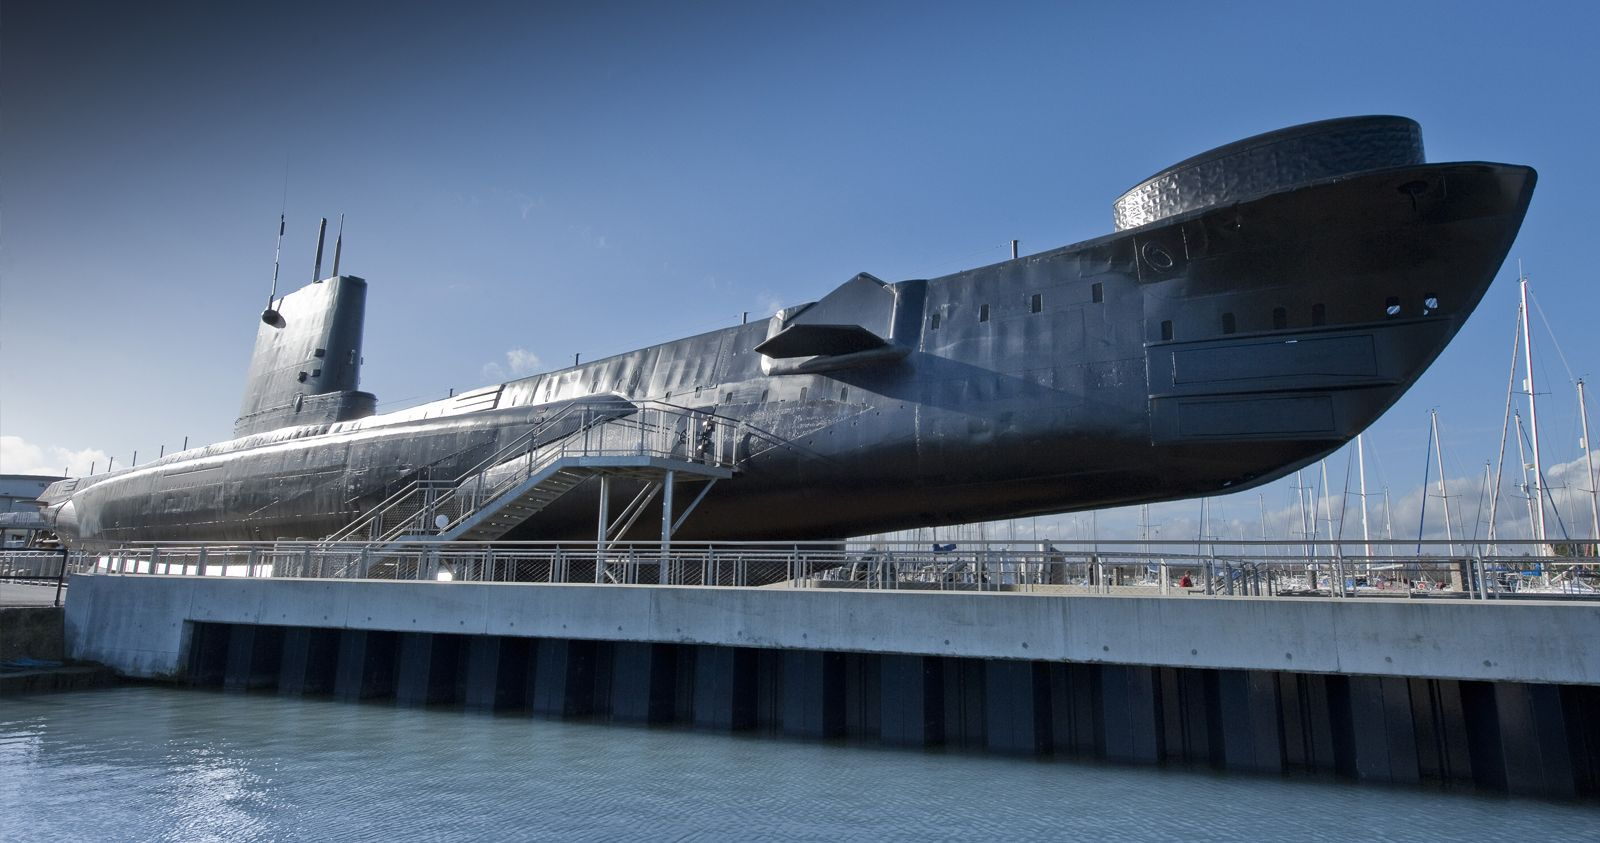 https://www.historicdockyard.co.uk/site-attractions/off-site-attractions/royal-navy-submarine-museum